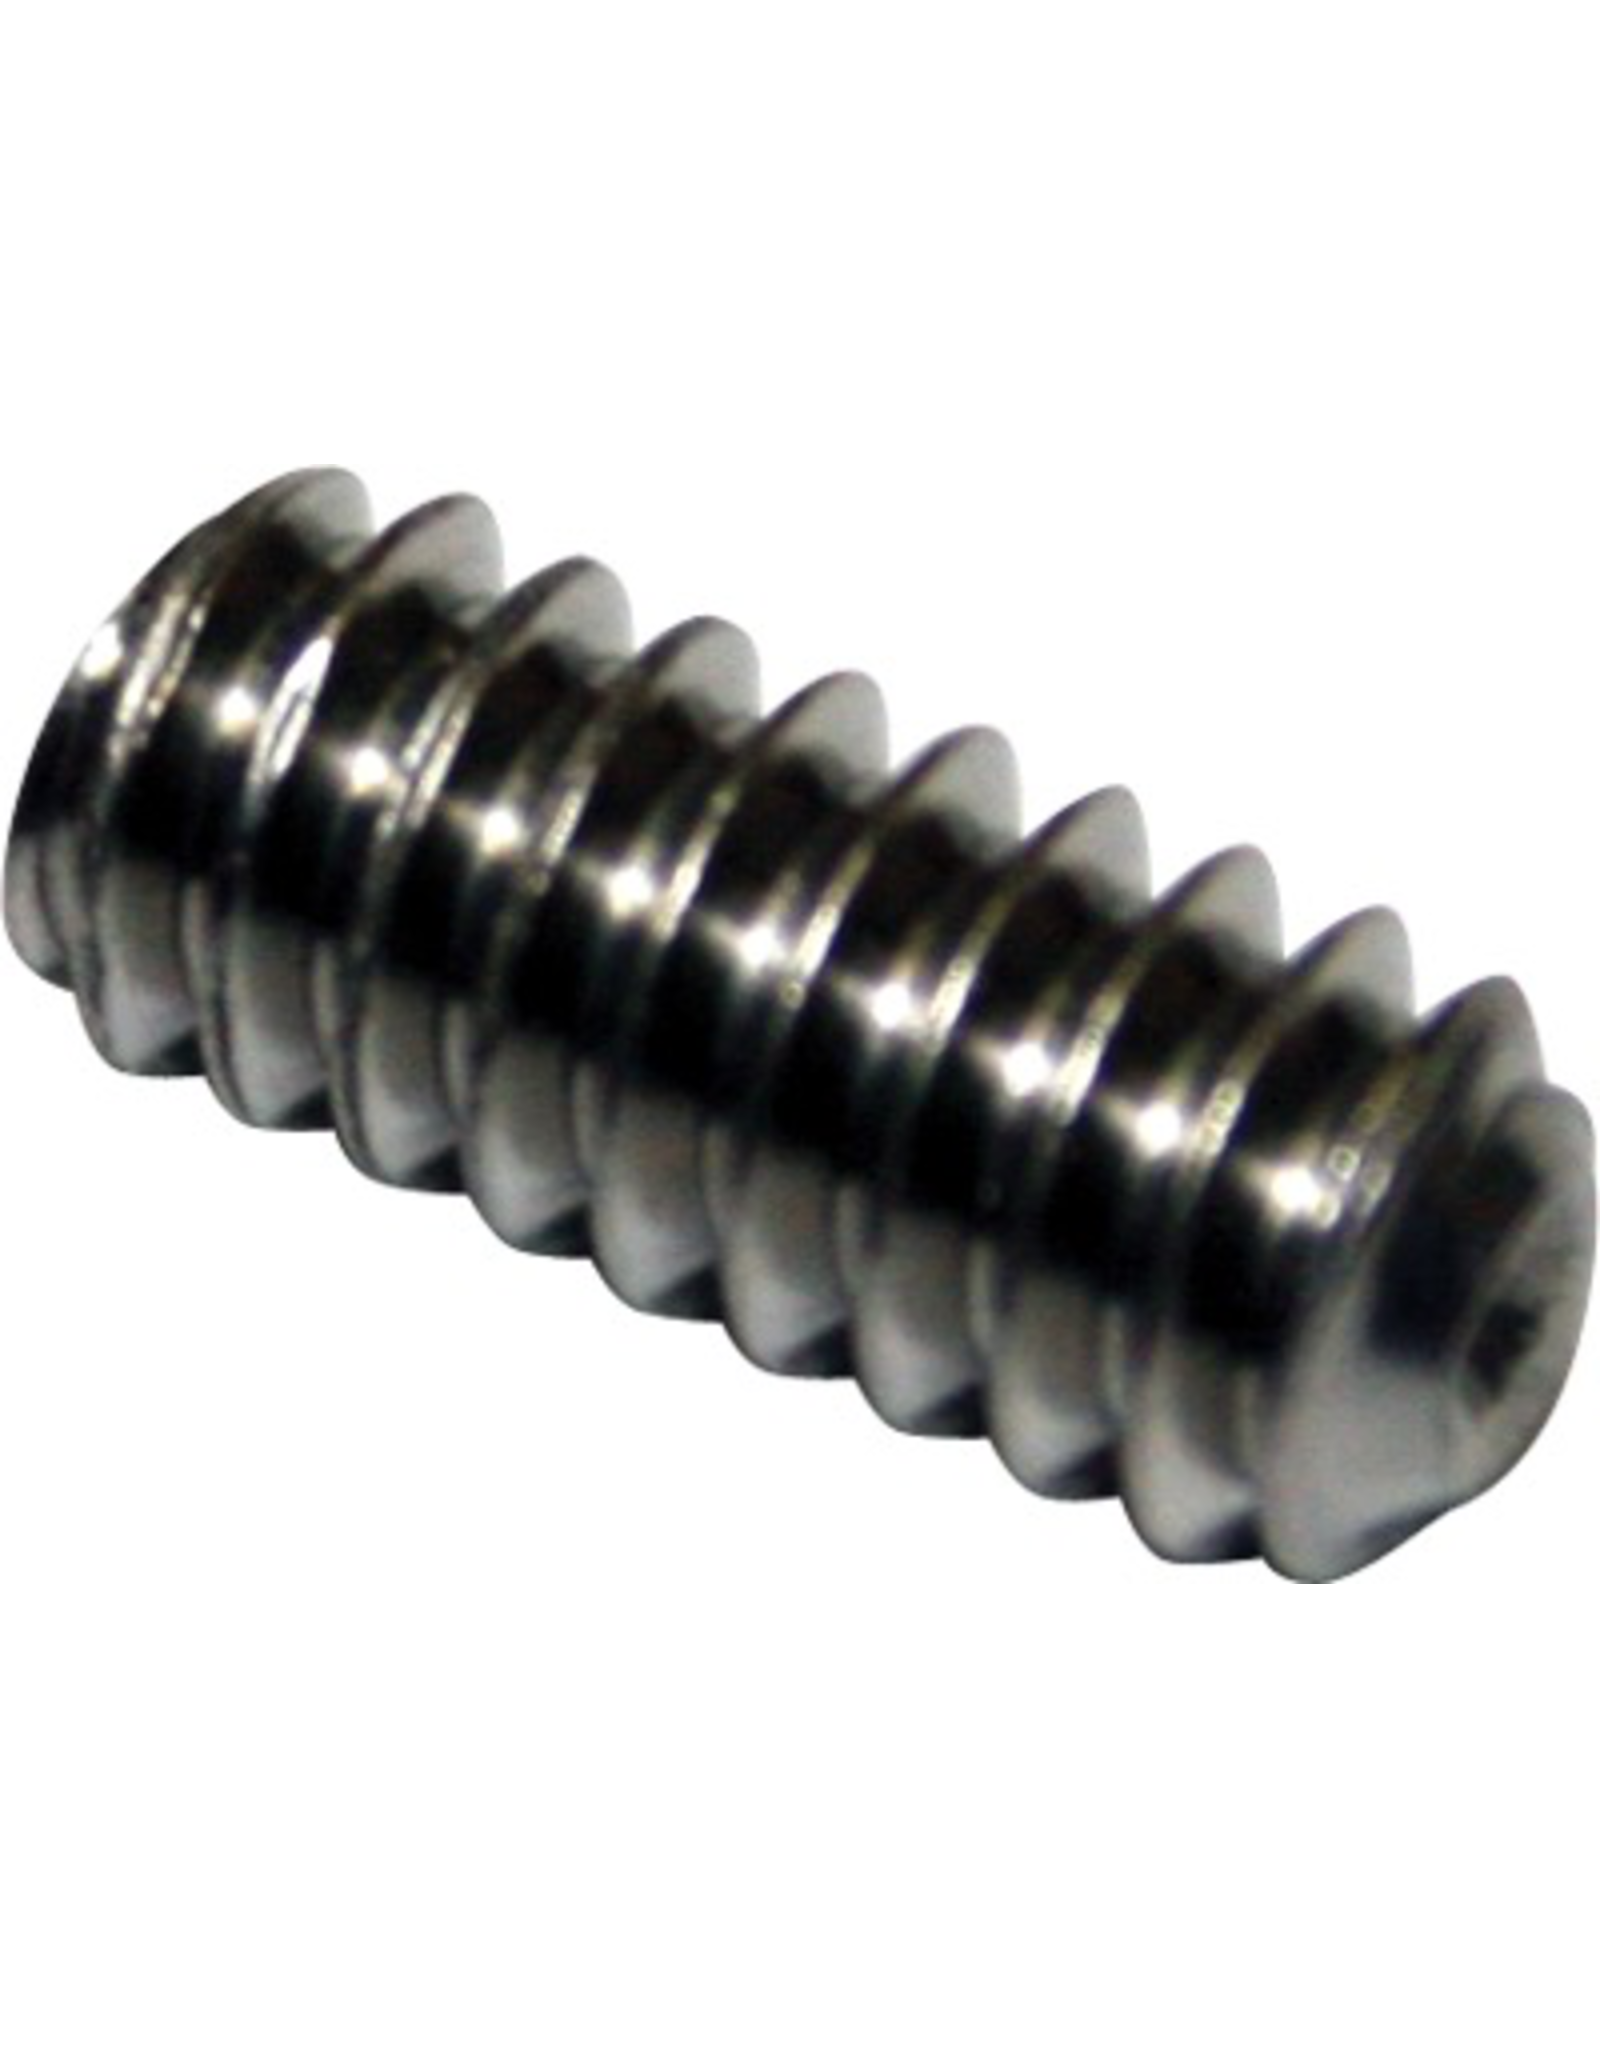 FCS FCS FIN SYSTEM REPLACEMENT SCREW 1pc